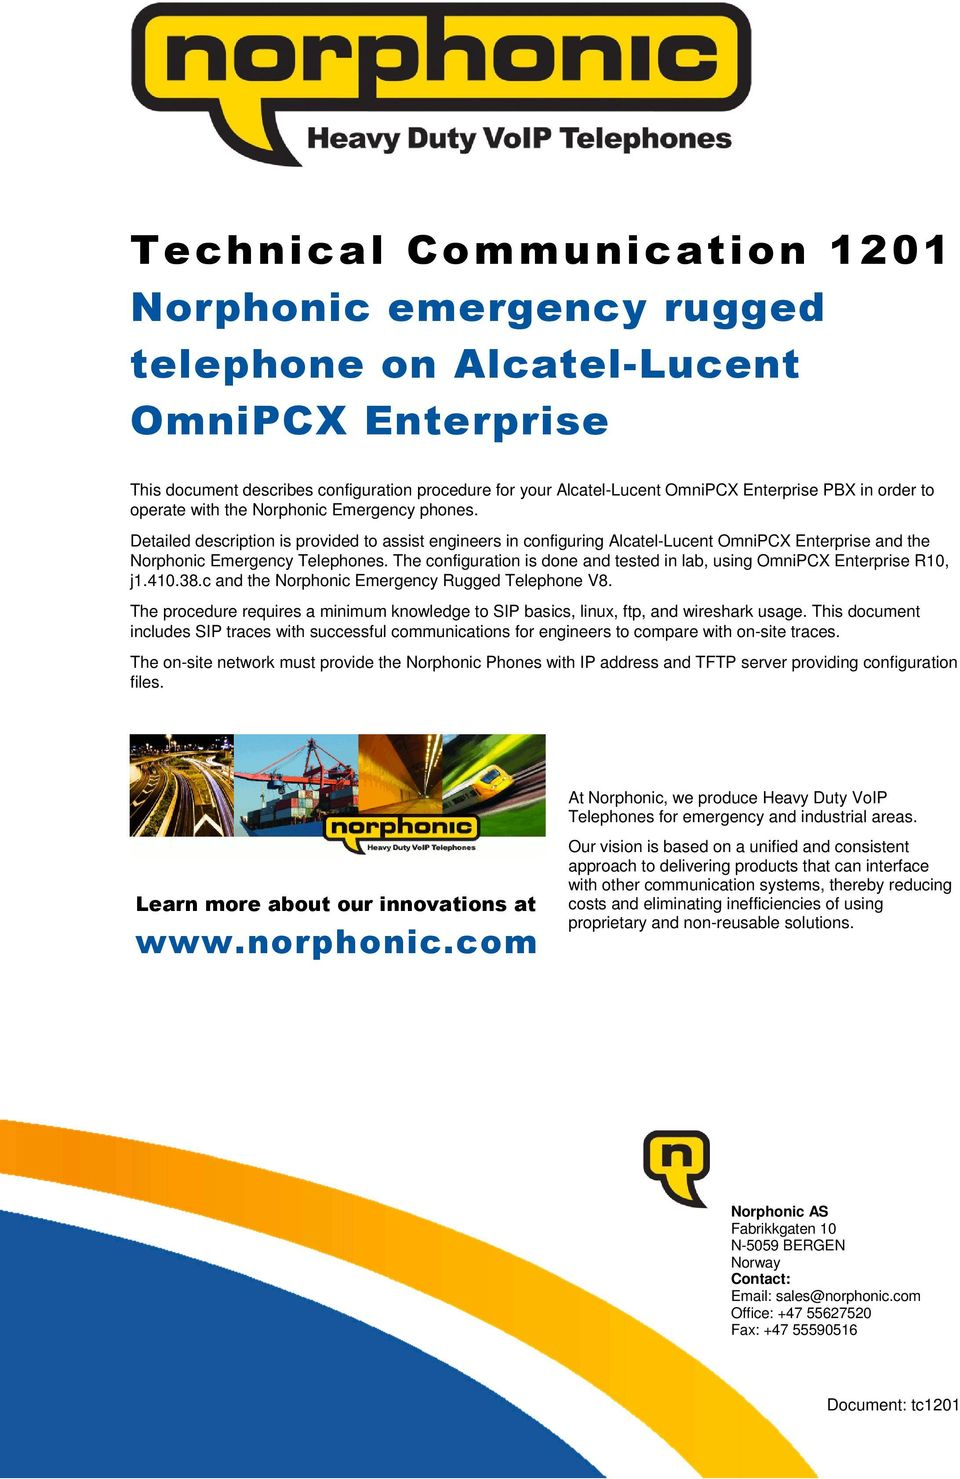 The configuration is done and tested in lab, using OmniPCX Enterprise R10, j1.410.38.c and the Norphonic Emergency Rugged Telephone V8.